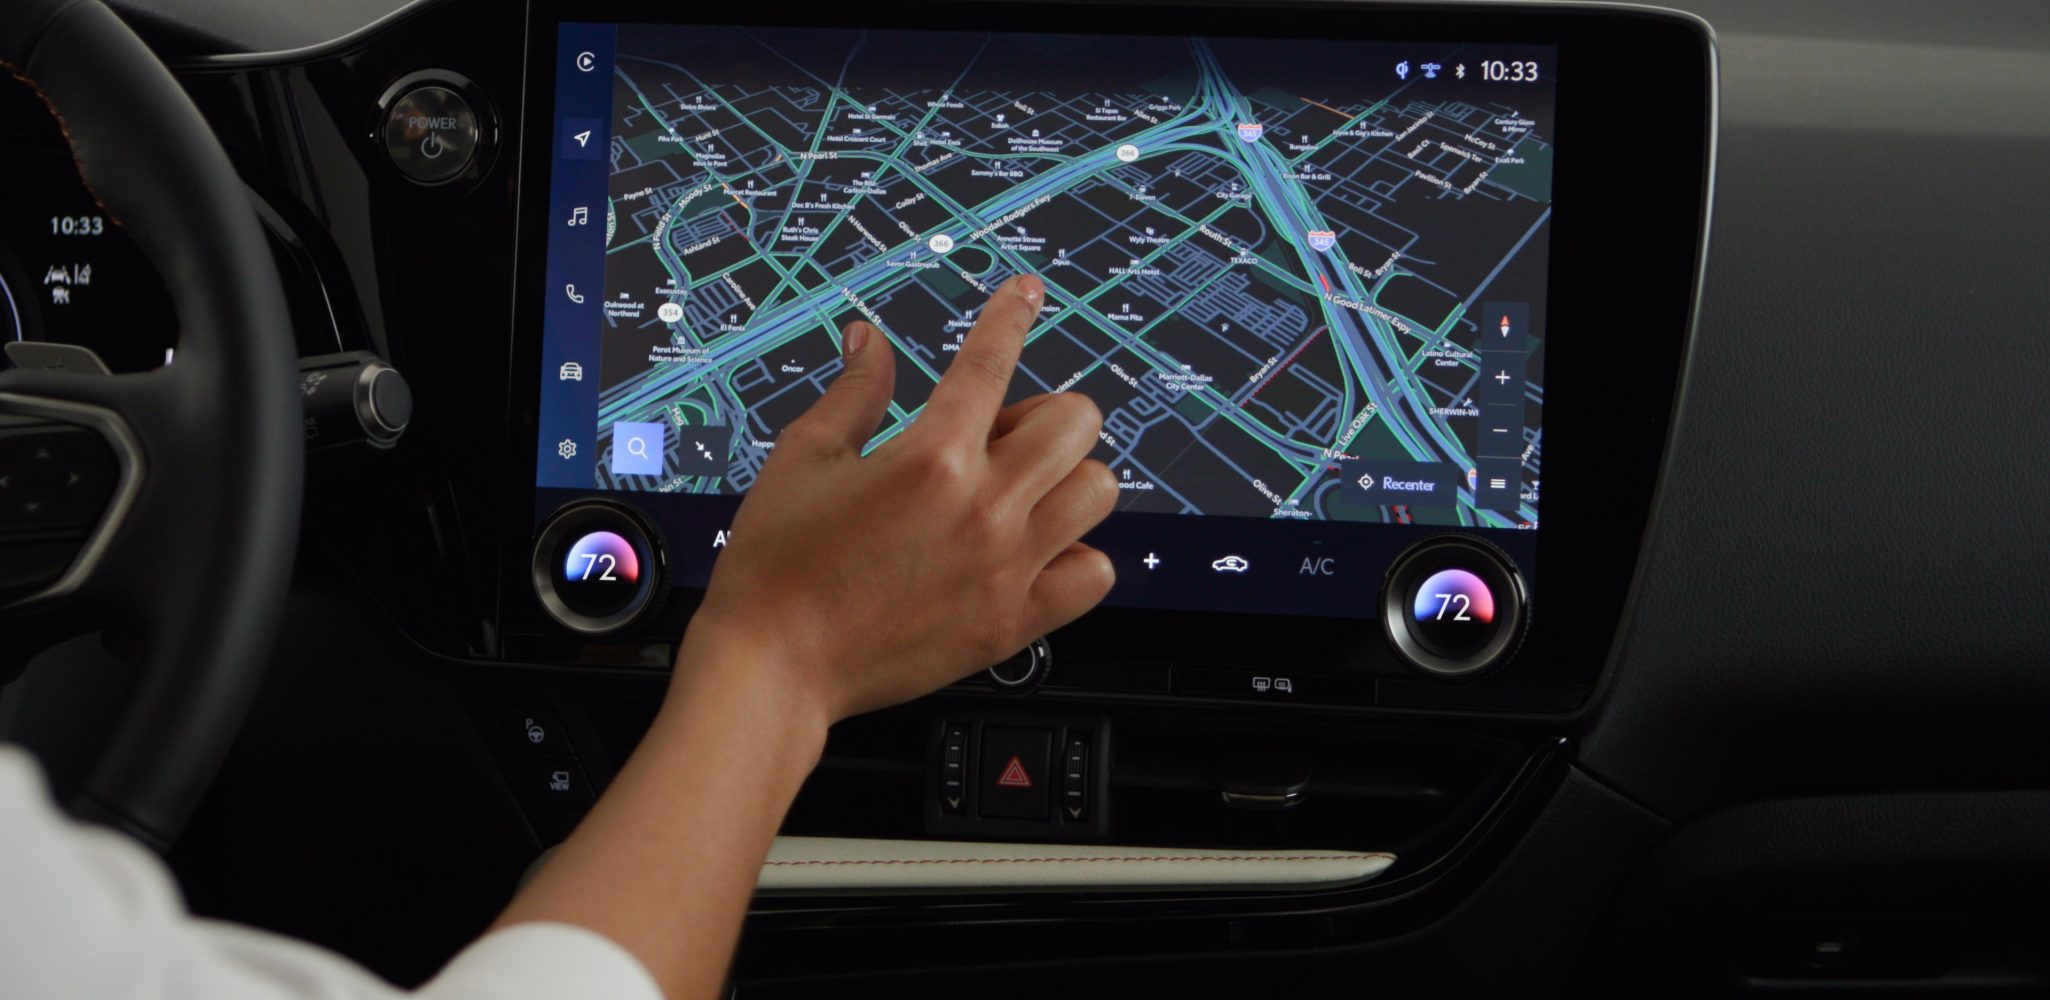 Toyota Motor North America Introduces Next-Generation Multimedia System To Deliver Best In-Car User Experience